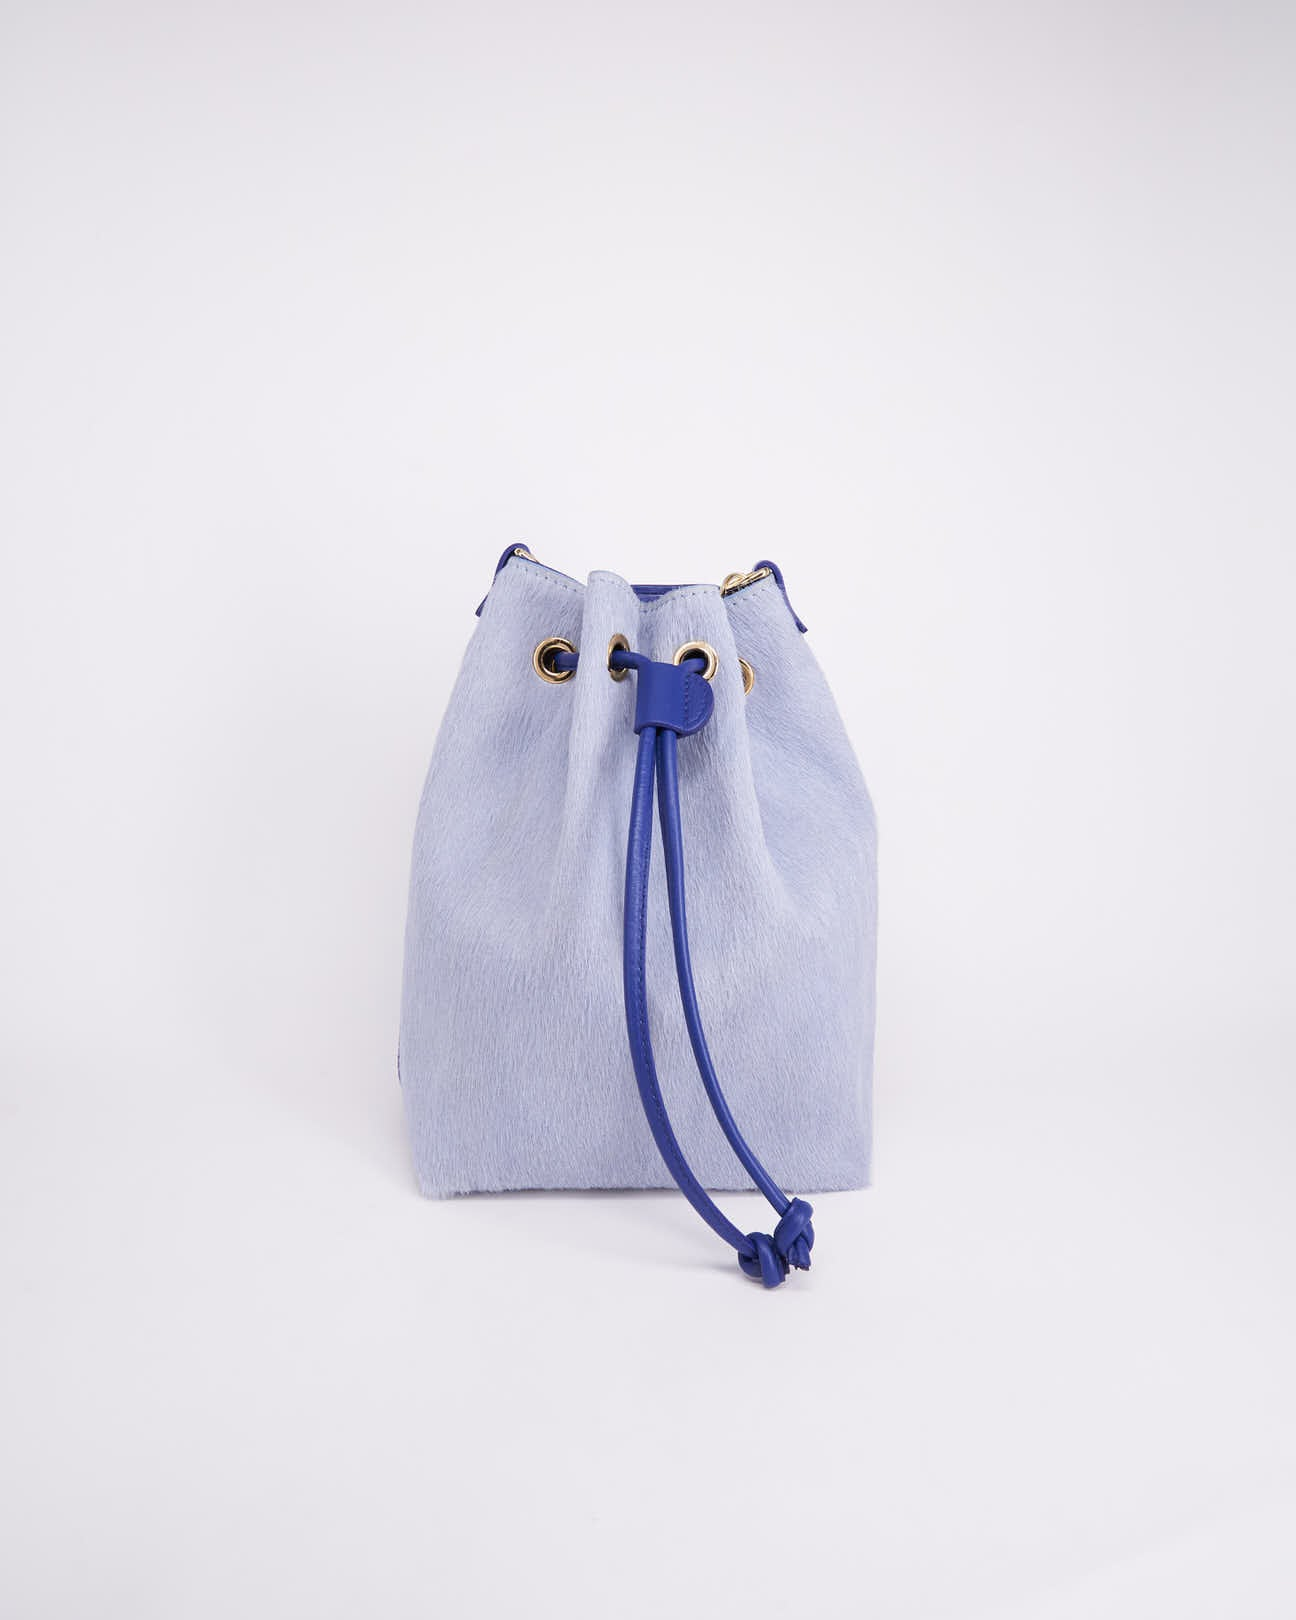 Bag-Nuo Sac-Nuovum-Leather-Blue-localdesigners-Barcelona-Nuovum-Handmade-front